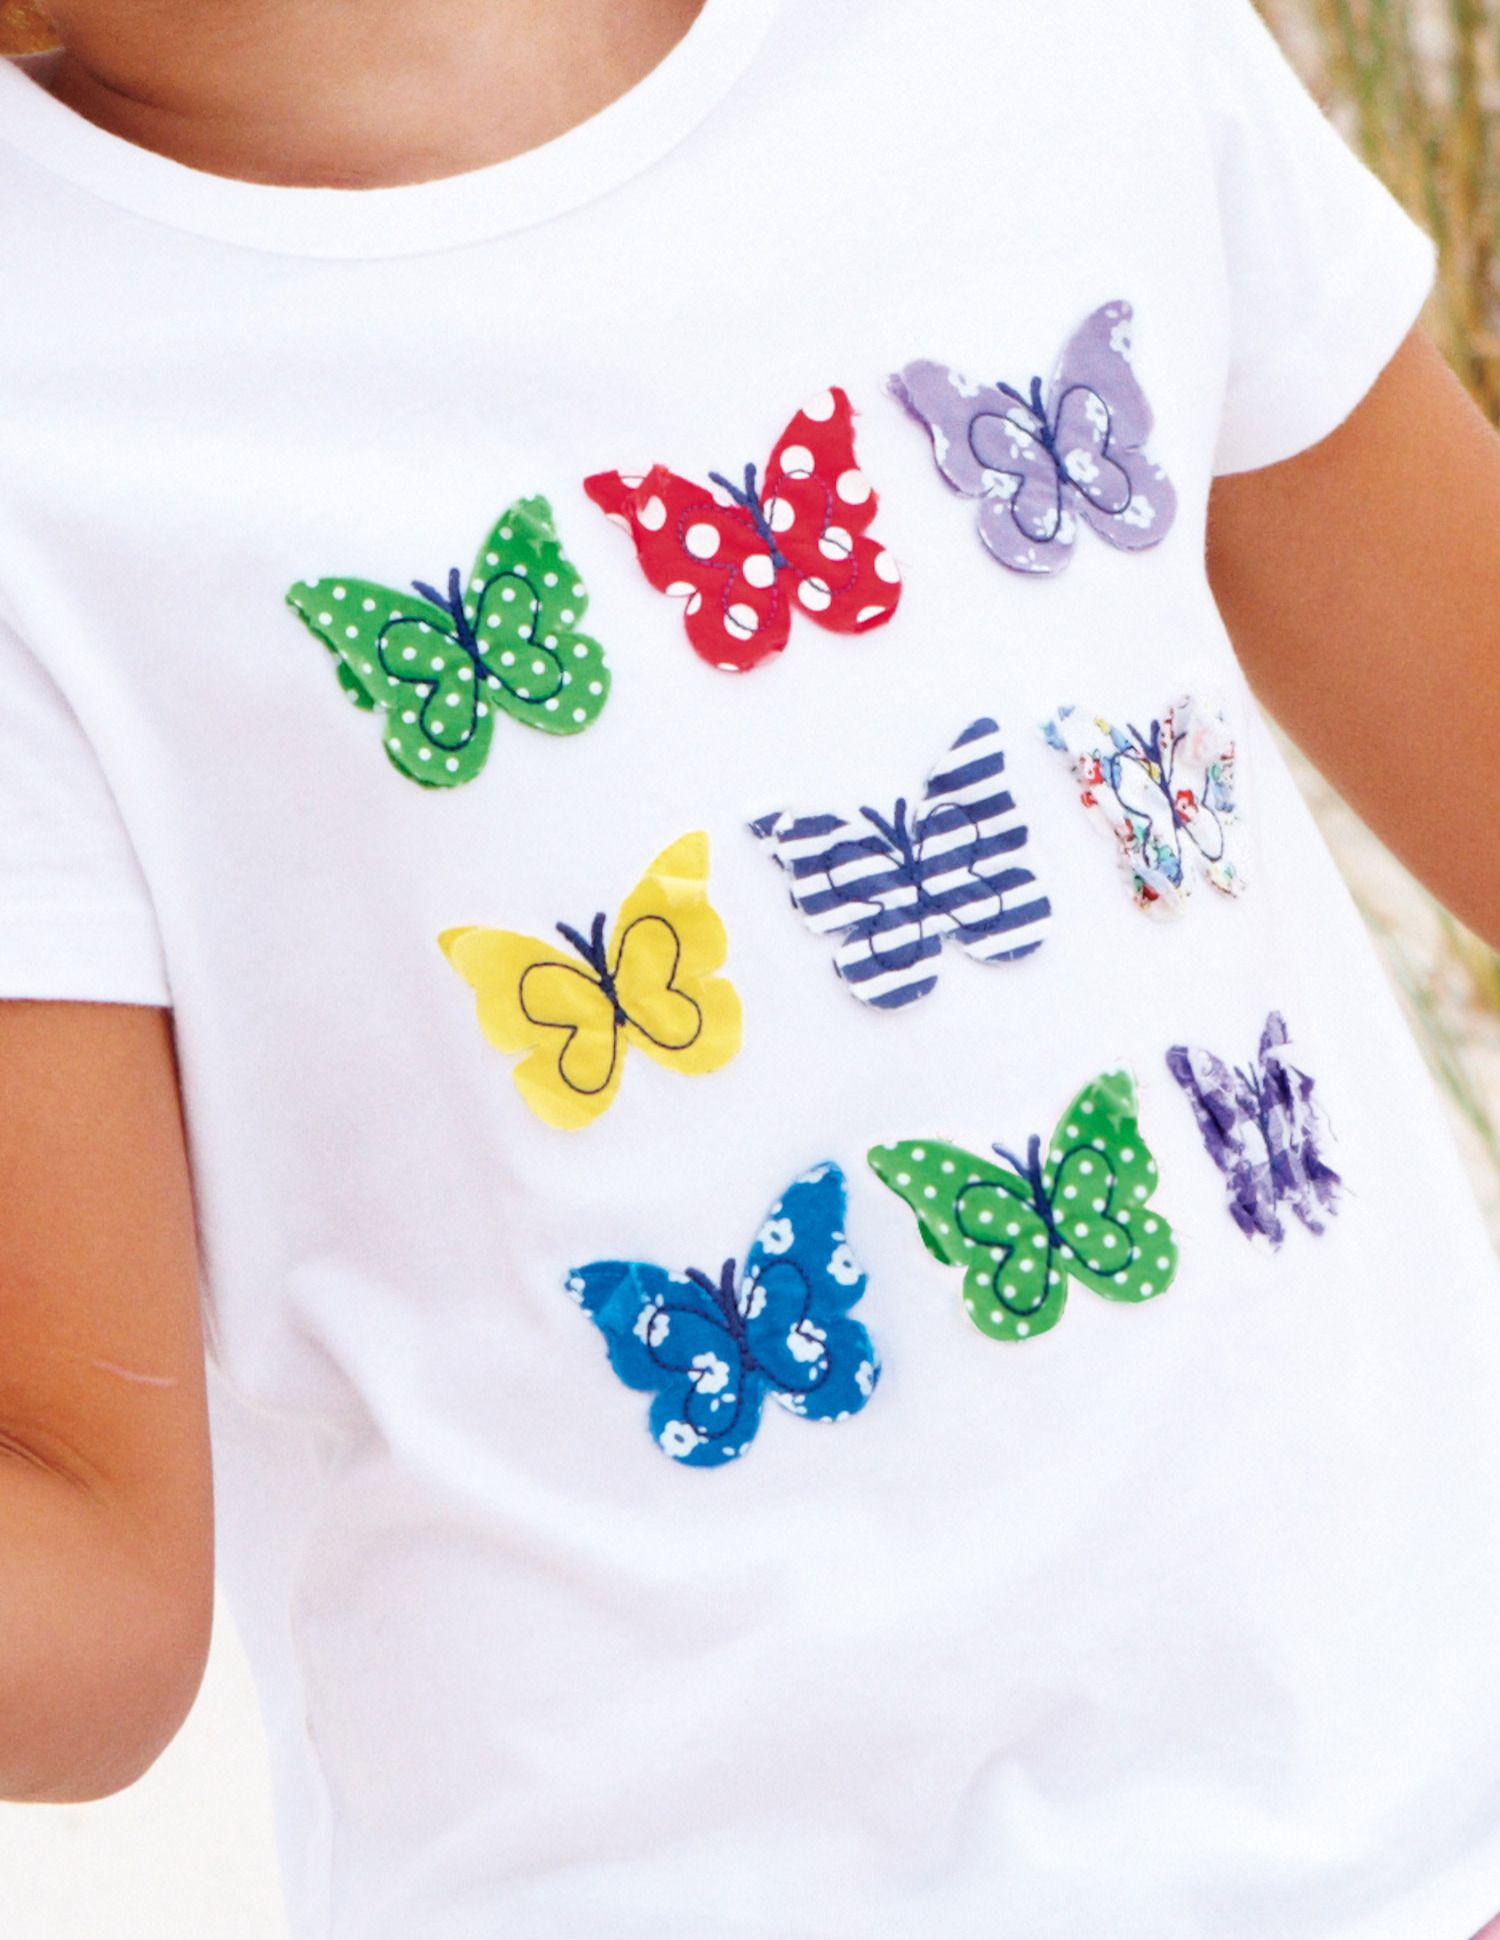 Not A Tute But I Love The Appliques On This Shirt Mini Boden Is Too Cute Mini Fashion Applique Designs Girls Tshirts